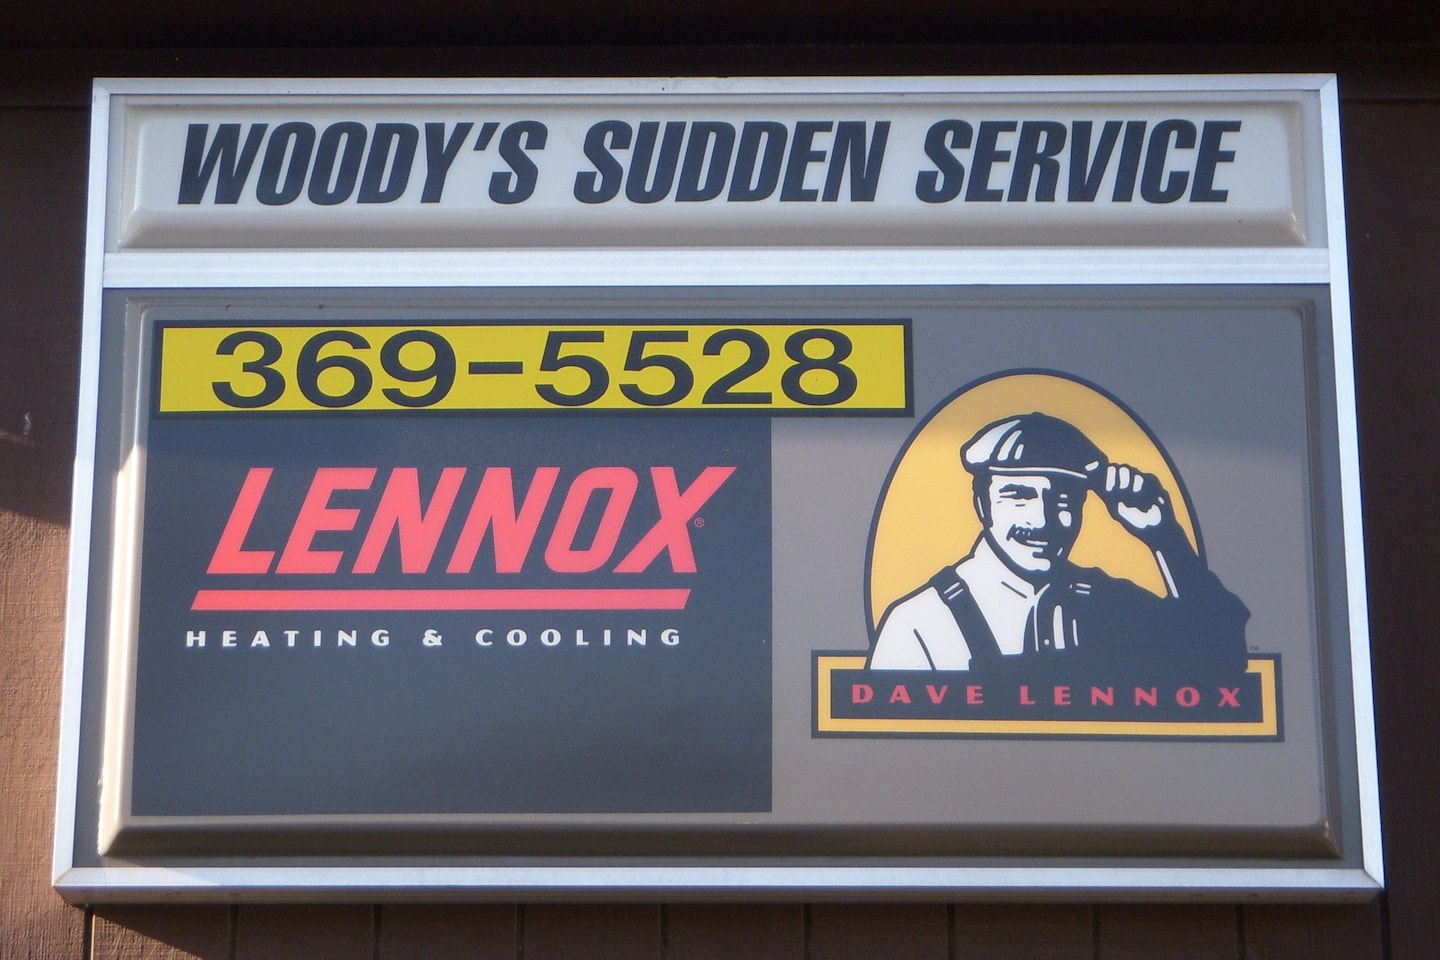 Woody's Sudden Service Inc